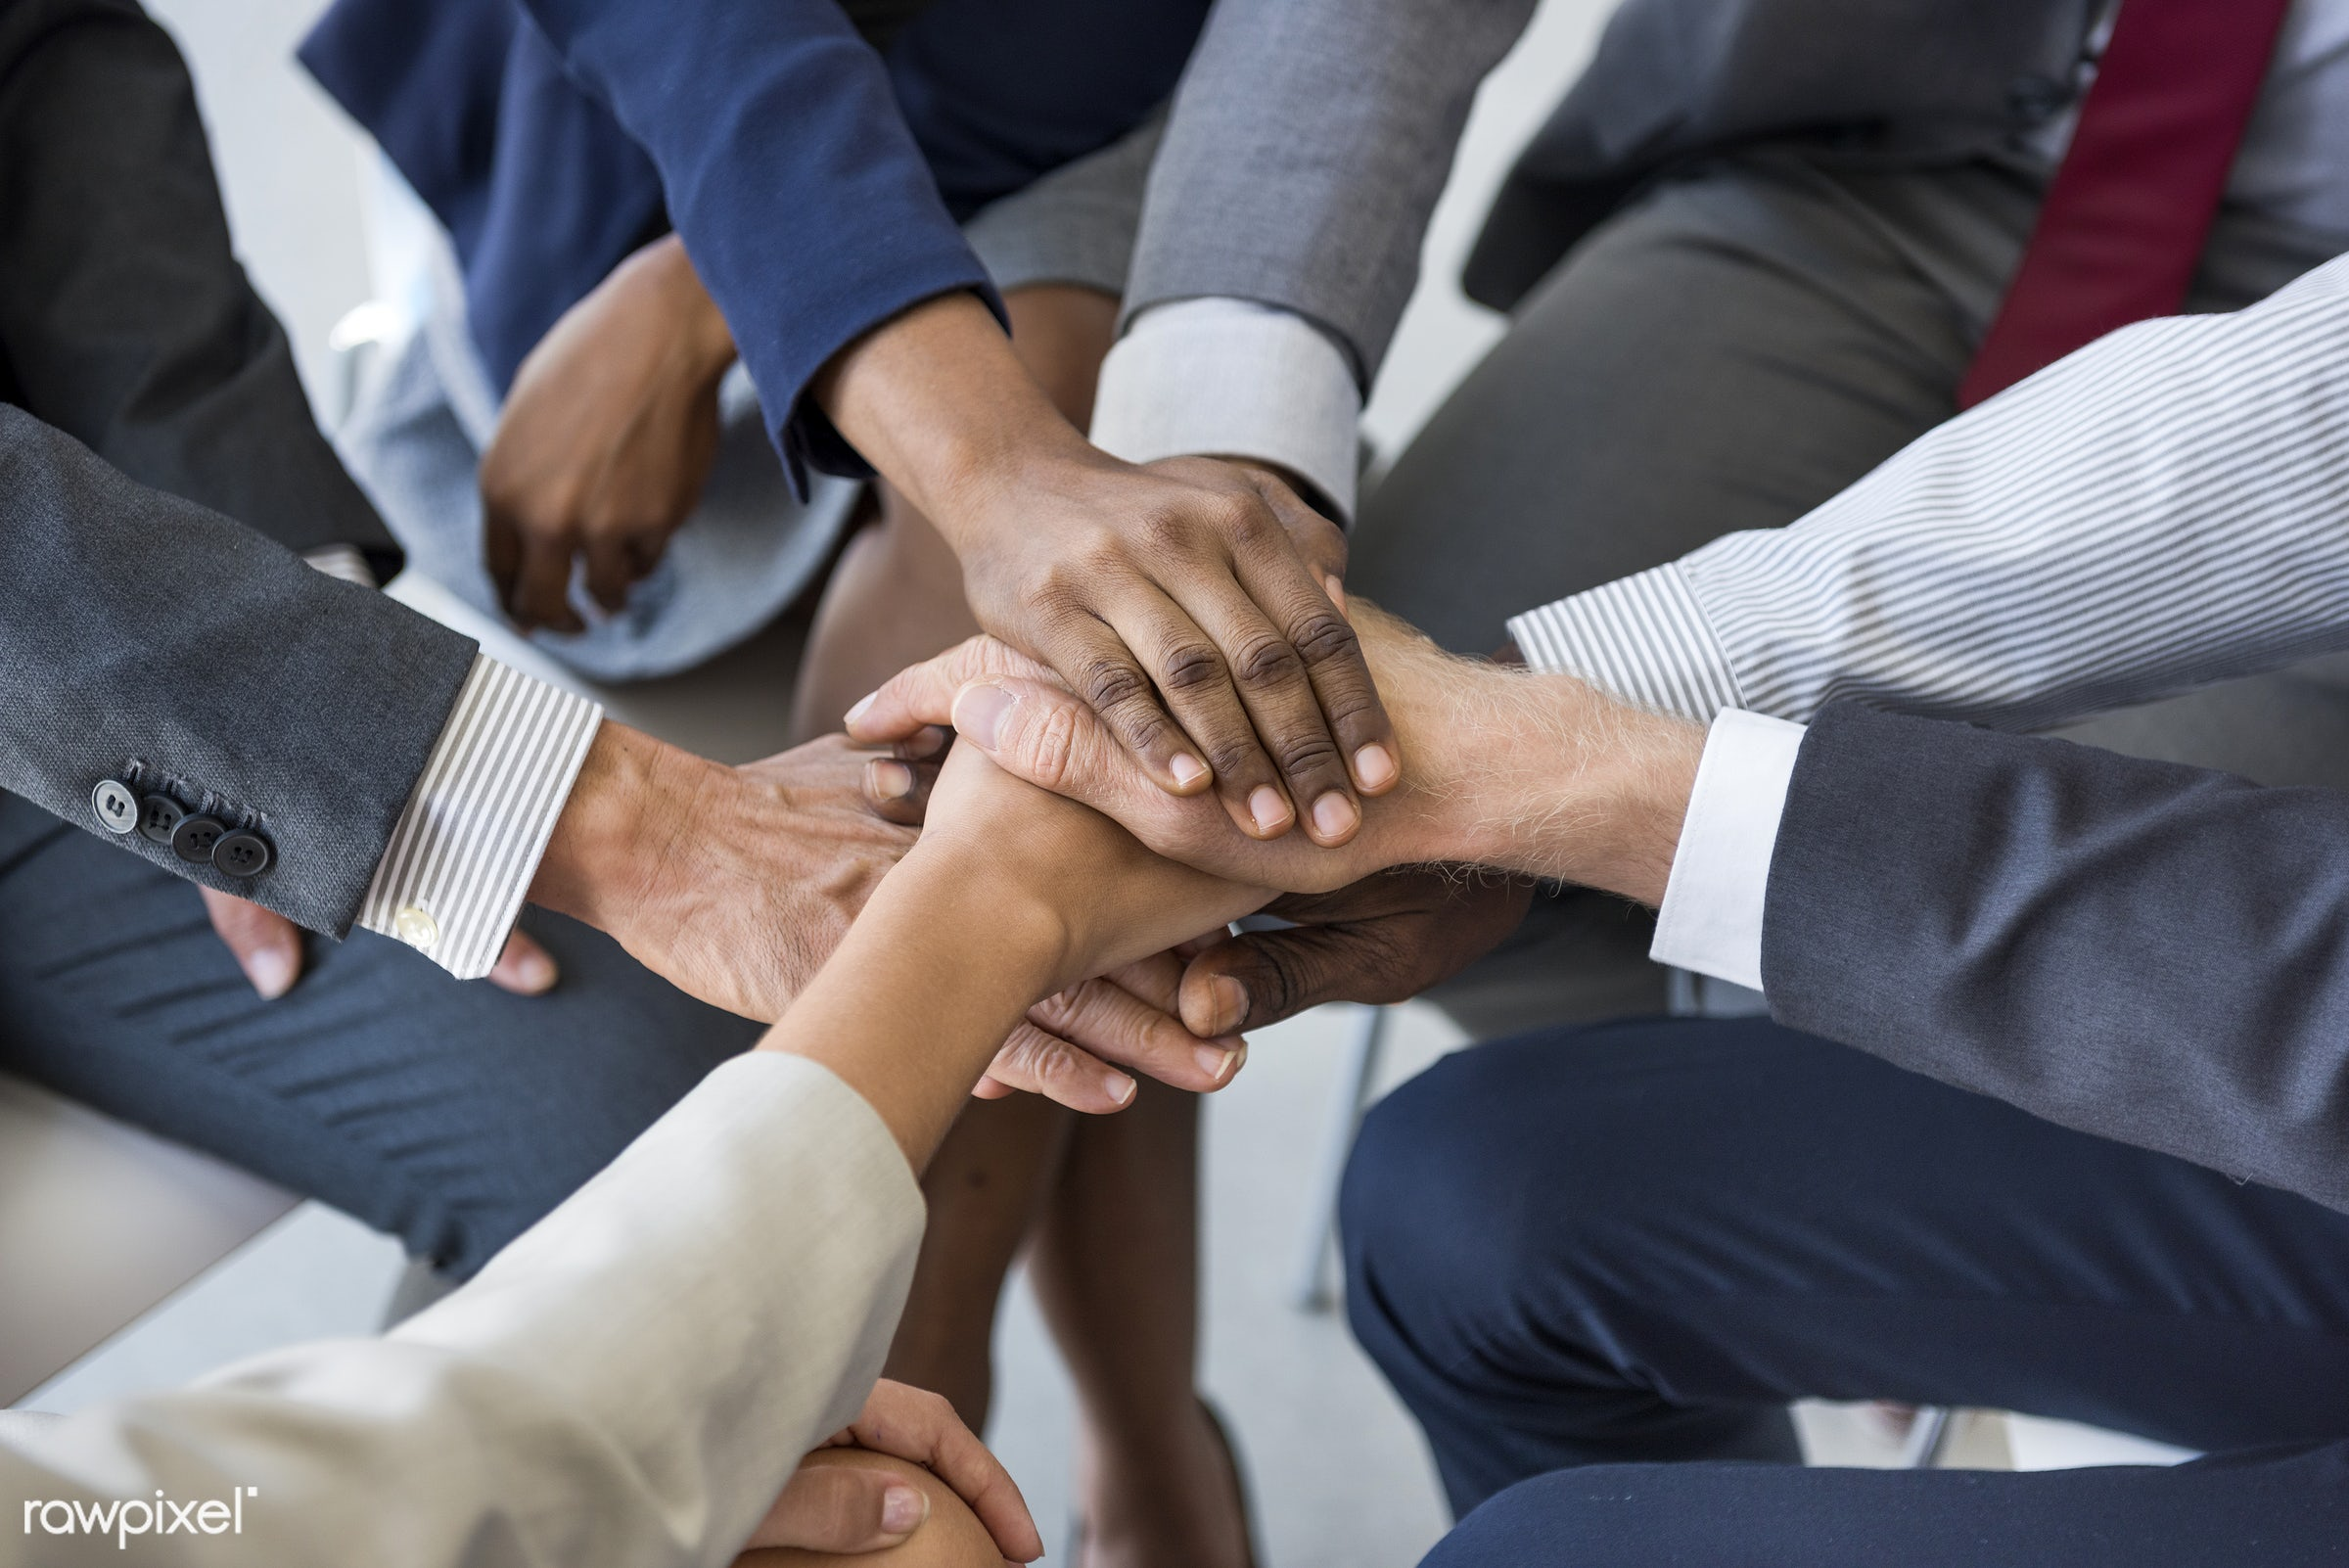 people, together, teamwork, friends, deal, young adult, participation, friendship, power, human hands, cheerful, partnership...